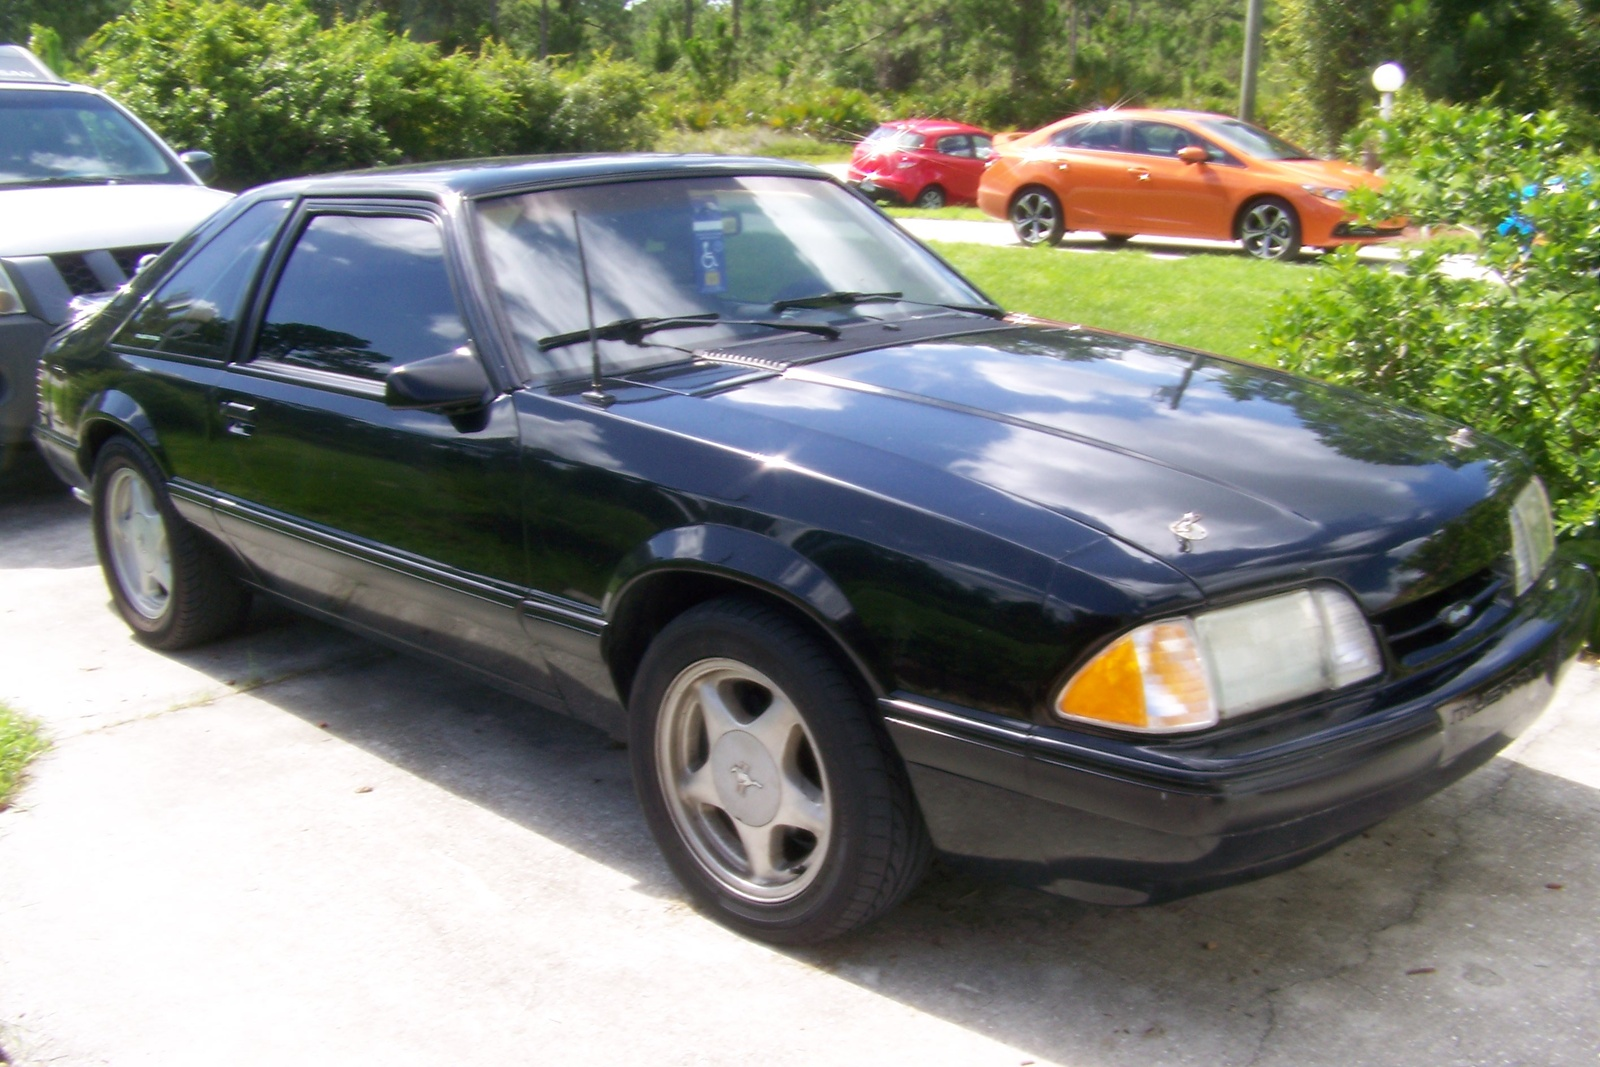 ford mustang questions i have a 1990 mustang 5 0 lx 5 sp. Black Bedroom Furniture Sets. Home Design Ideas